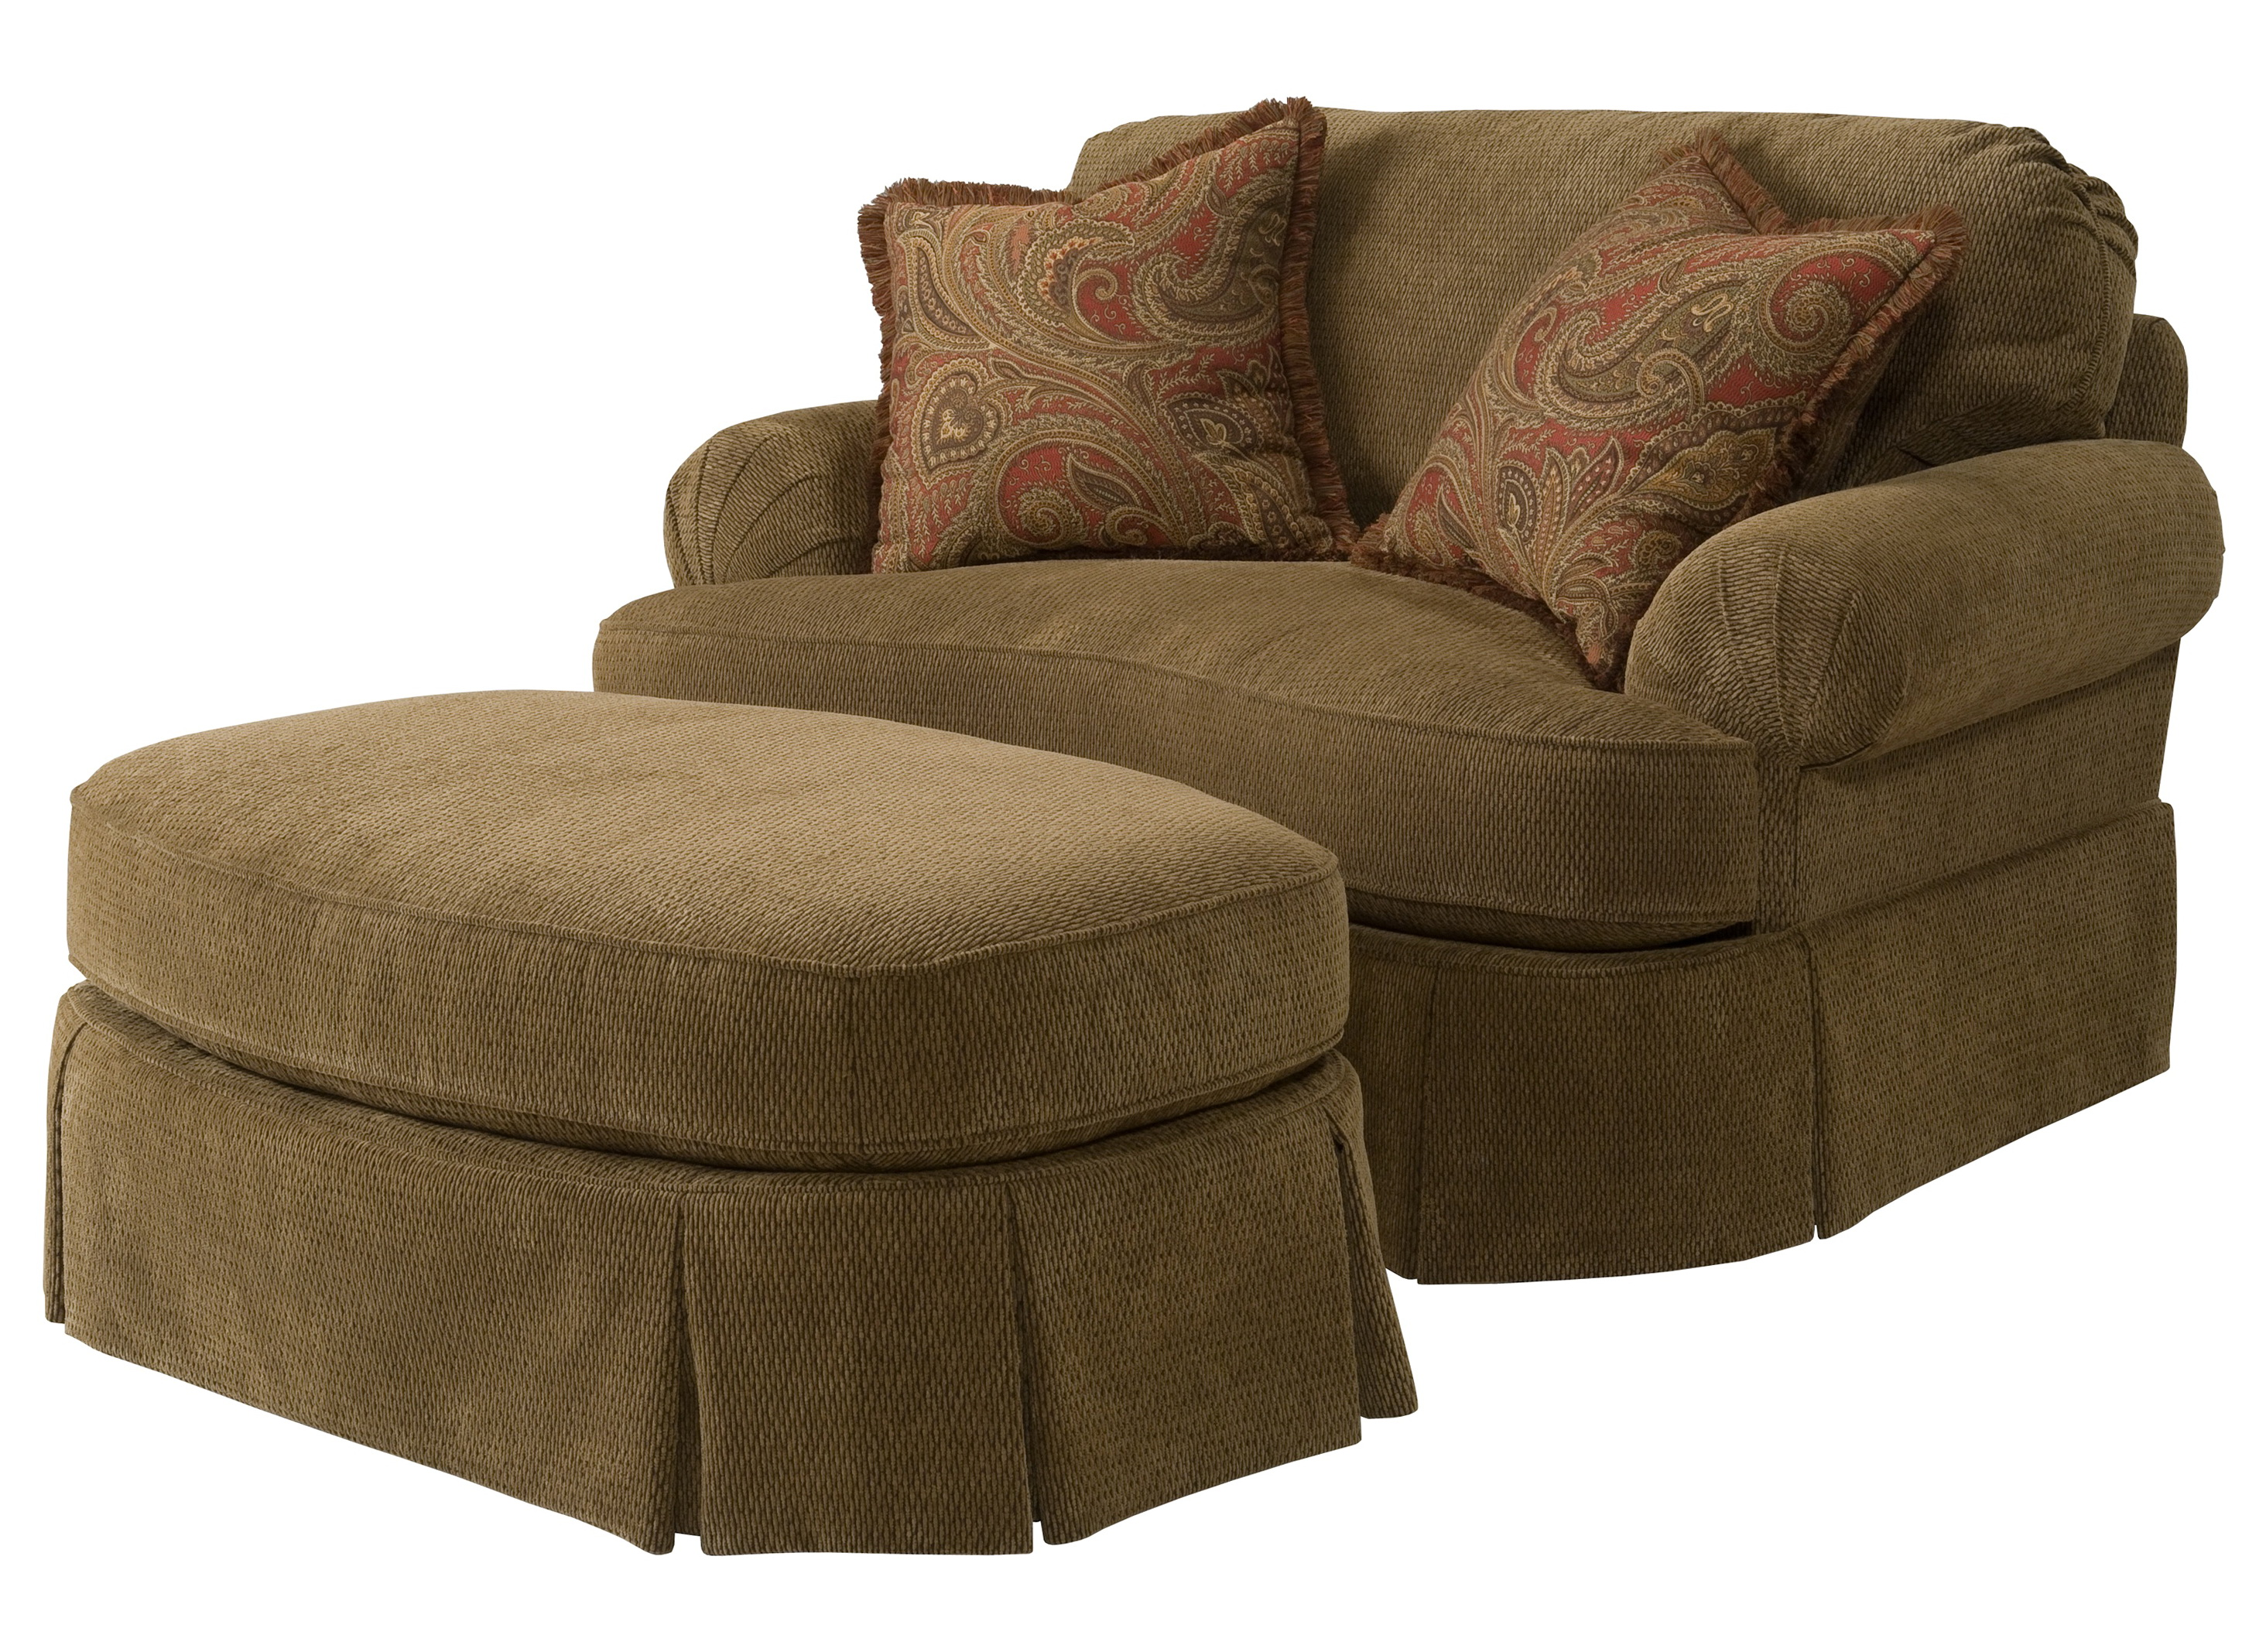 oversized chair and ottoman set nova posture leather home design ideas